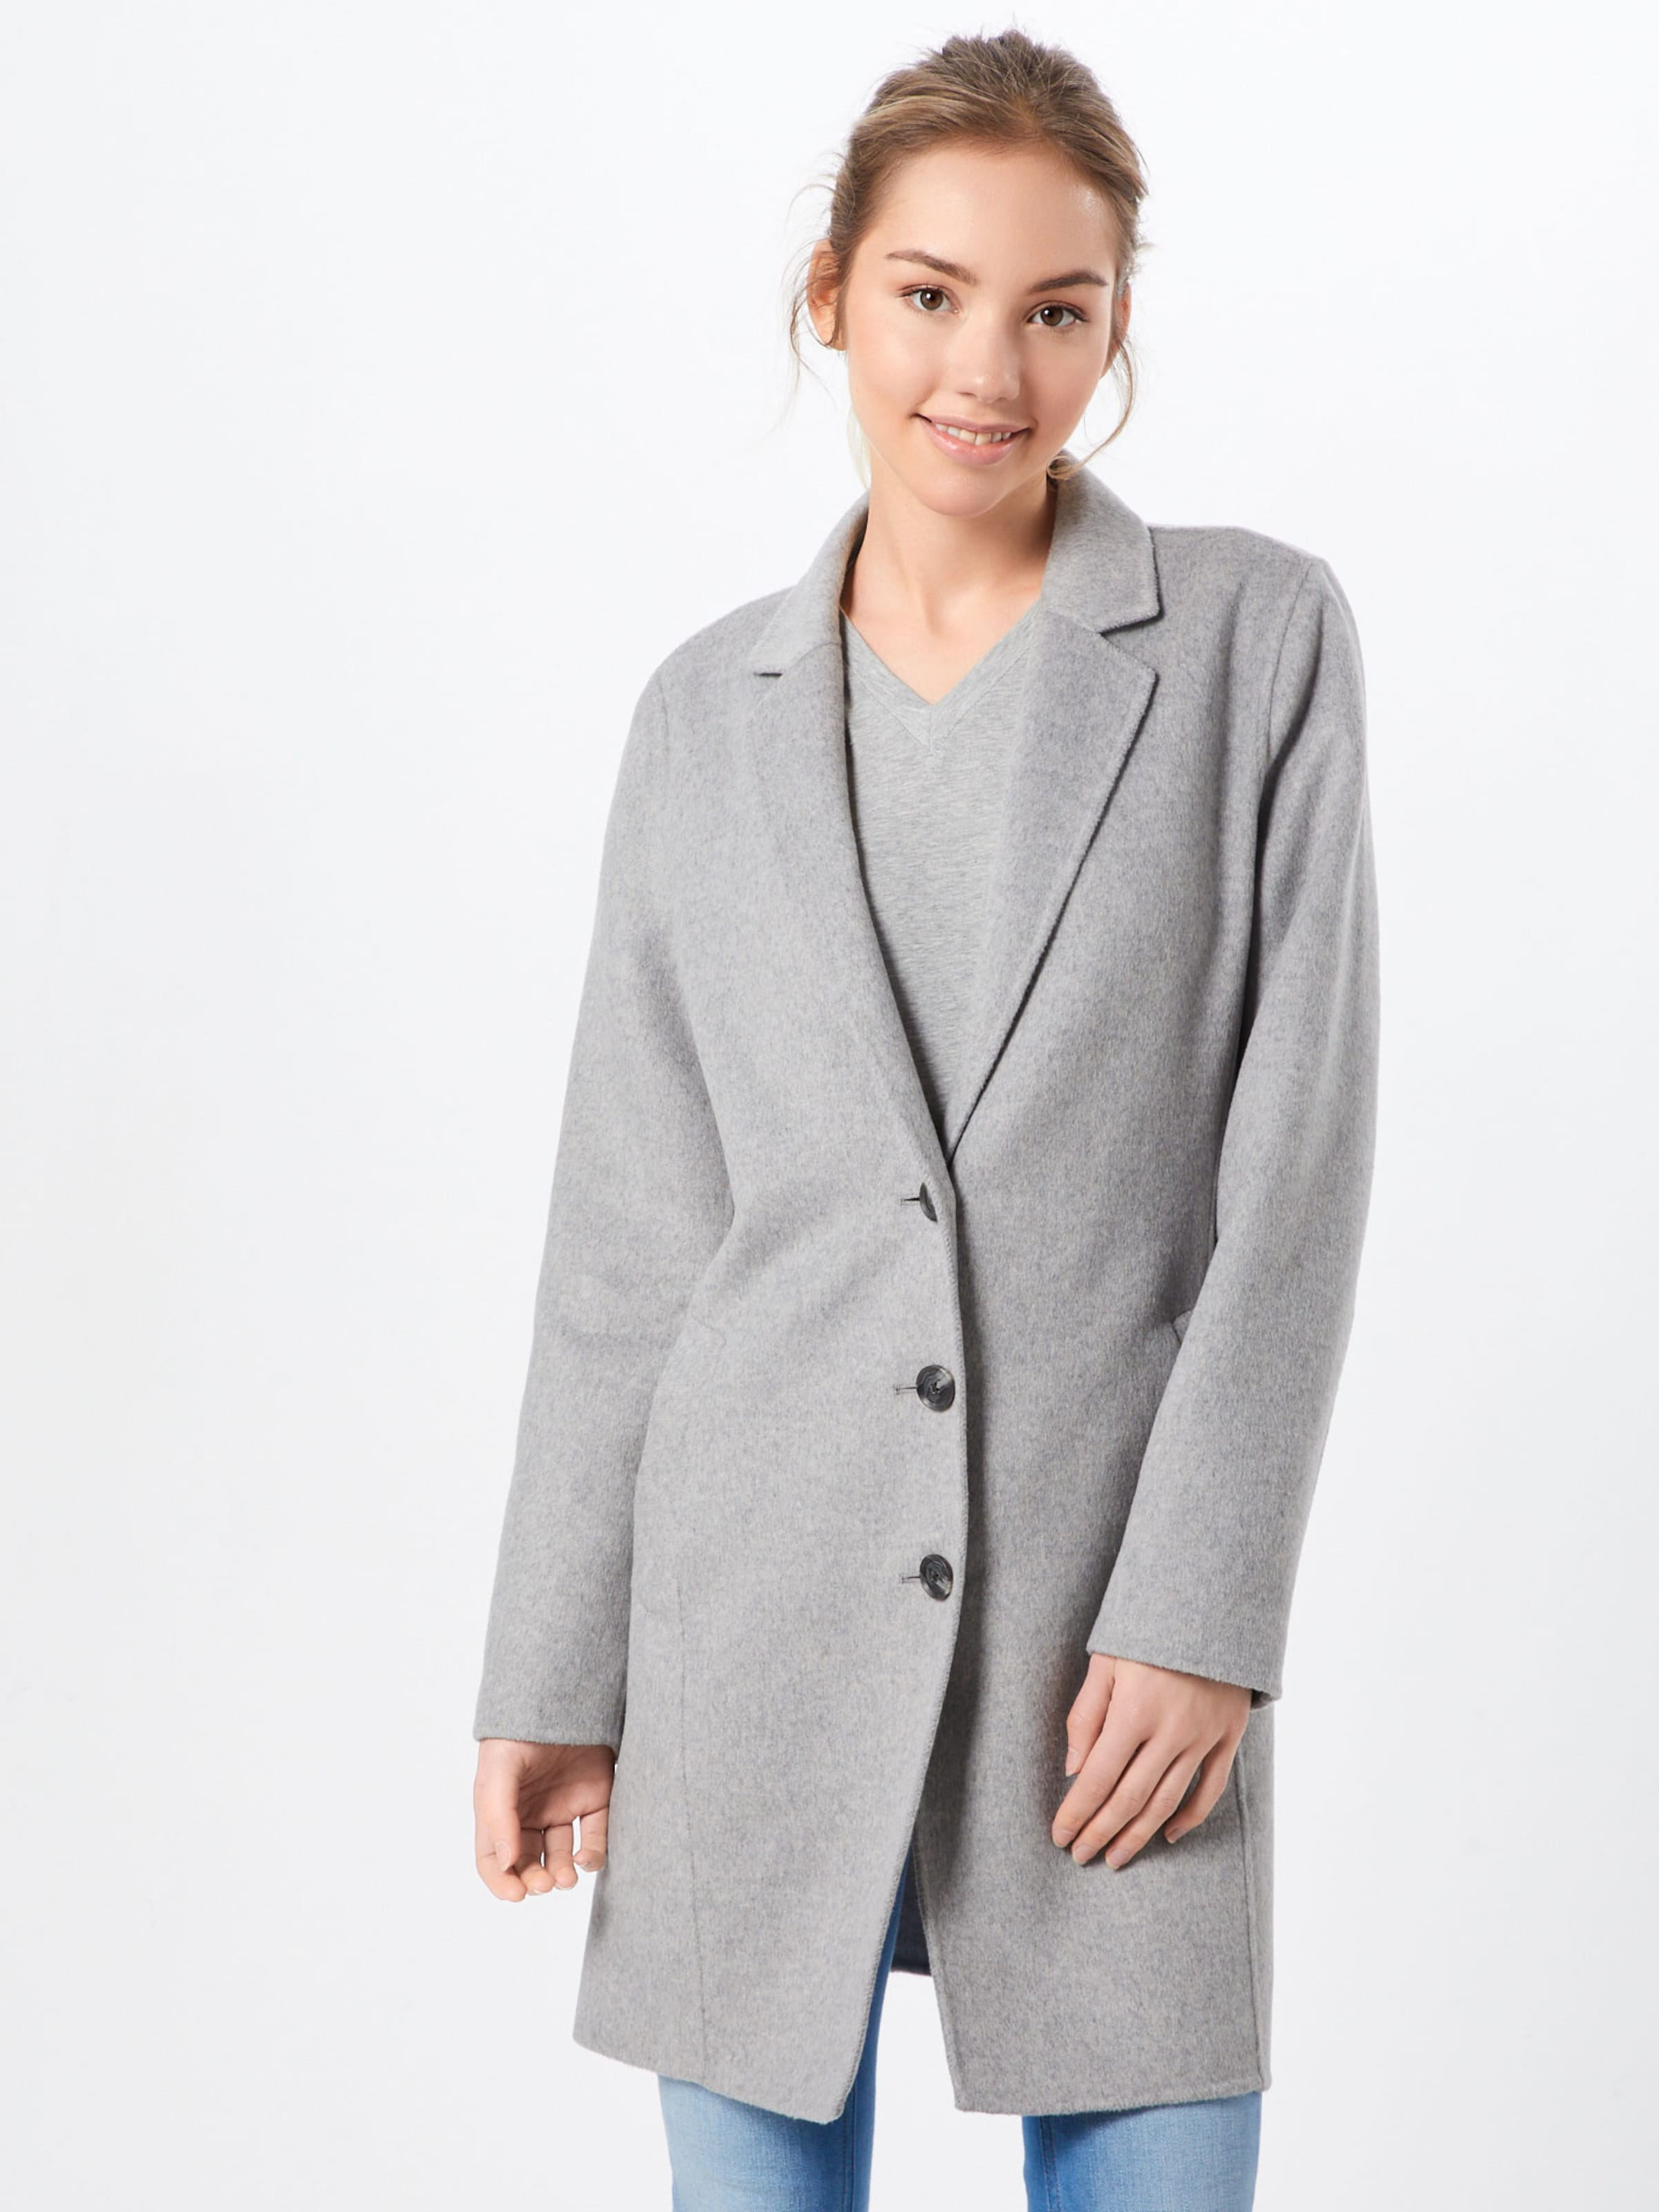 Republic Gris Top Chiné Banana saison 'double Manteau En Mi Coat' Face 5q3ARL4j